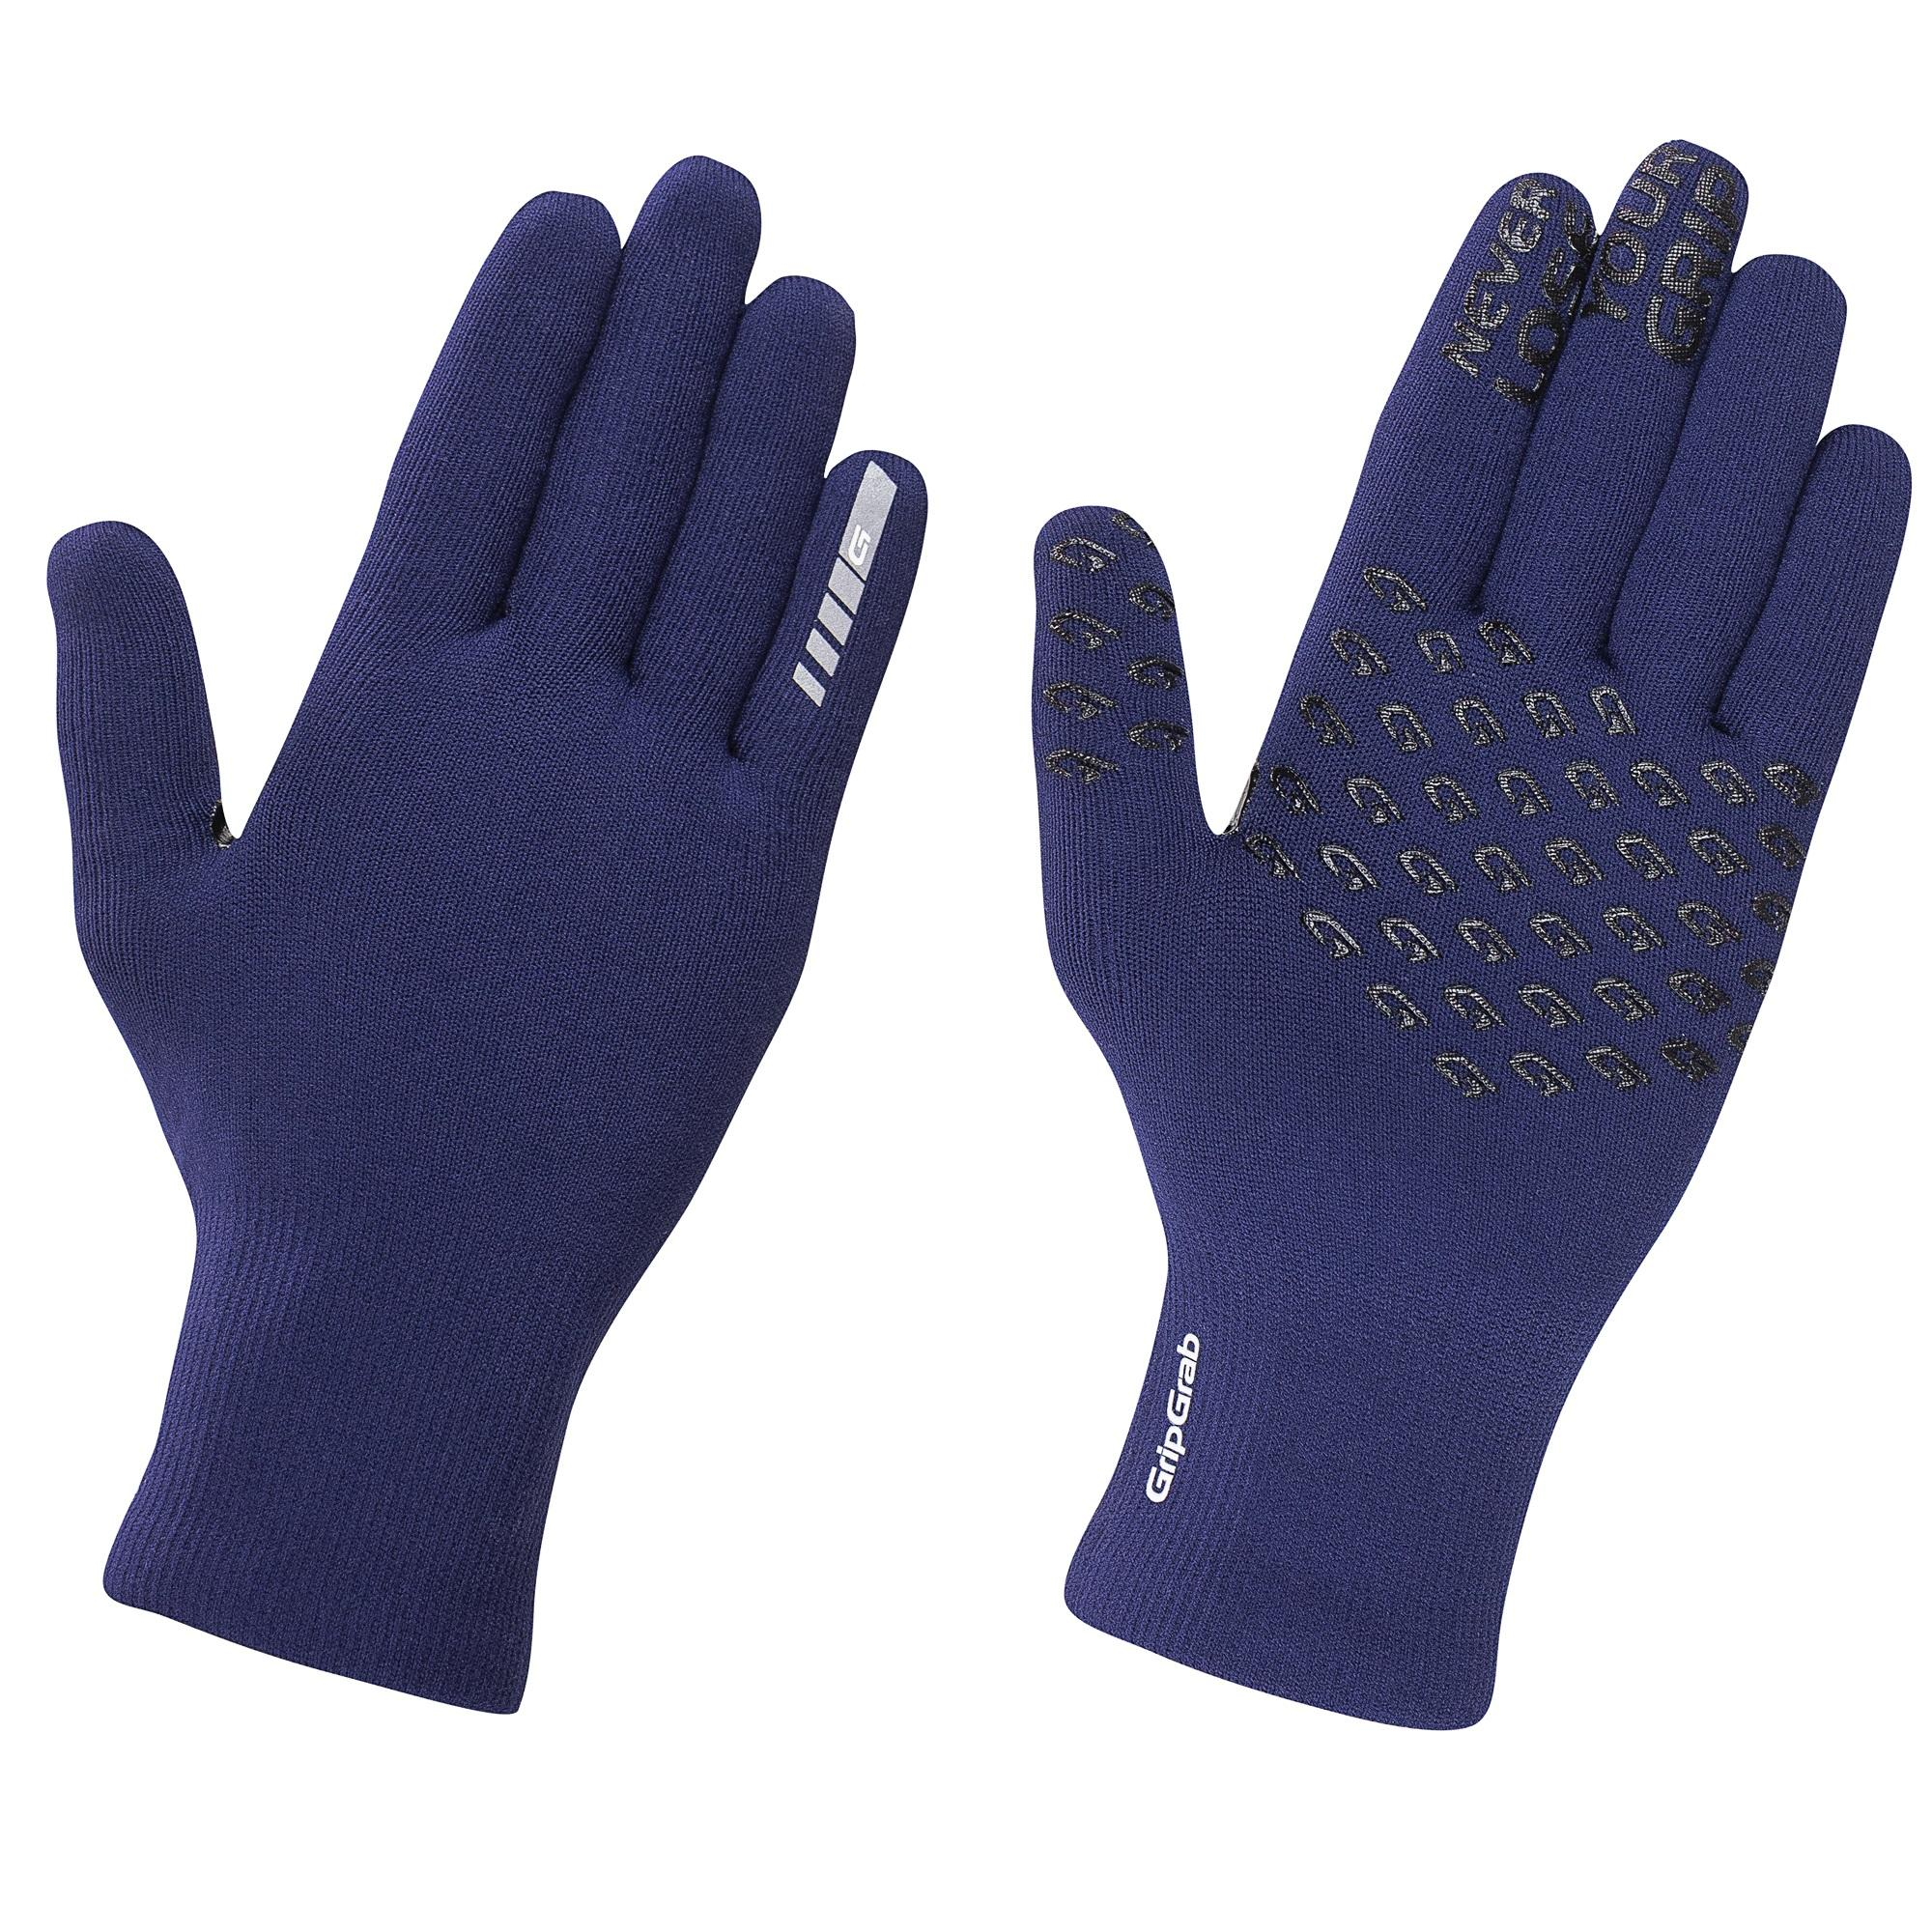 Afbeelding GripGrab Fietshandschoenen Winter Unisex Blauw - Waterproof Knitted Thermal Glove Navy Blue